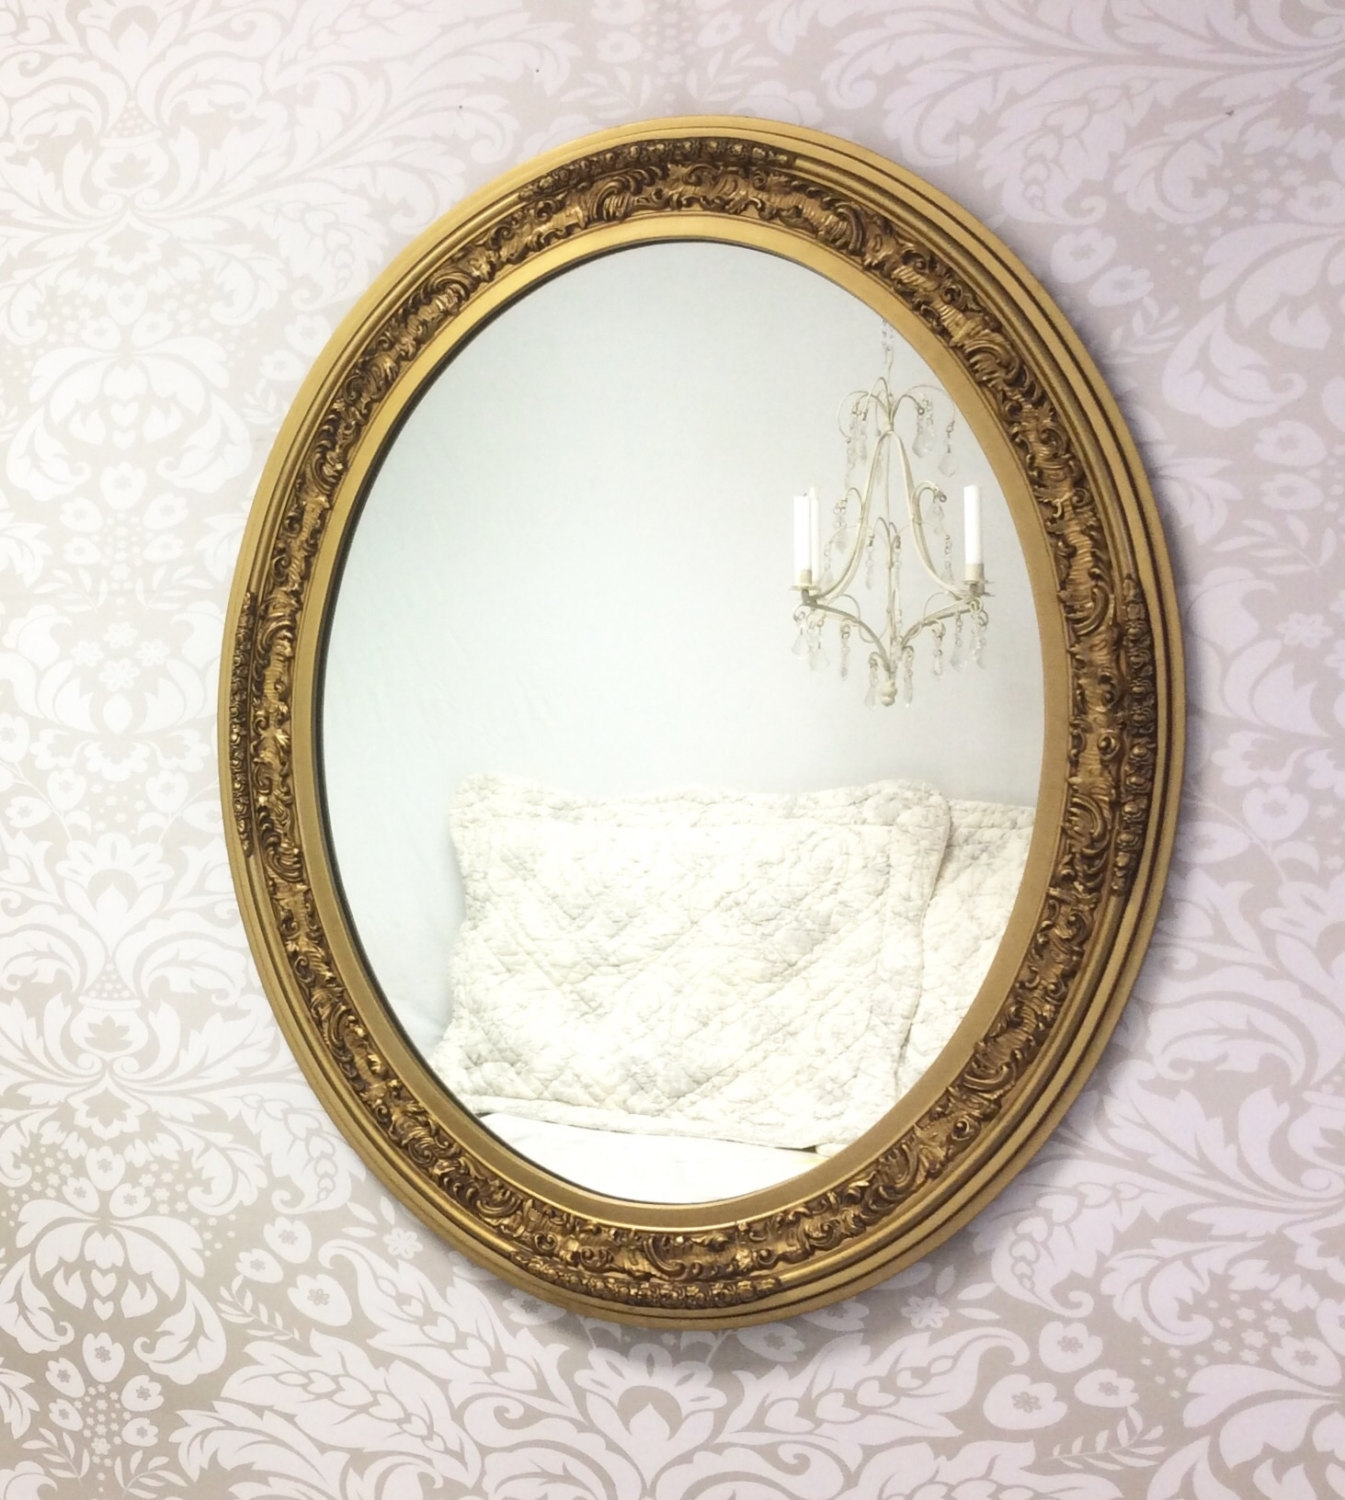 Ornate Gold Mirror Etsy In Large Oval Mirrors (View 4 of 15)